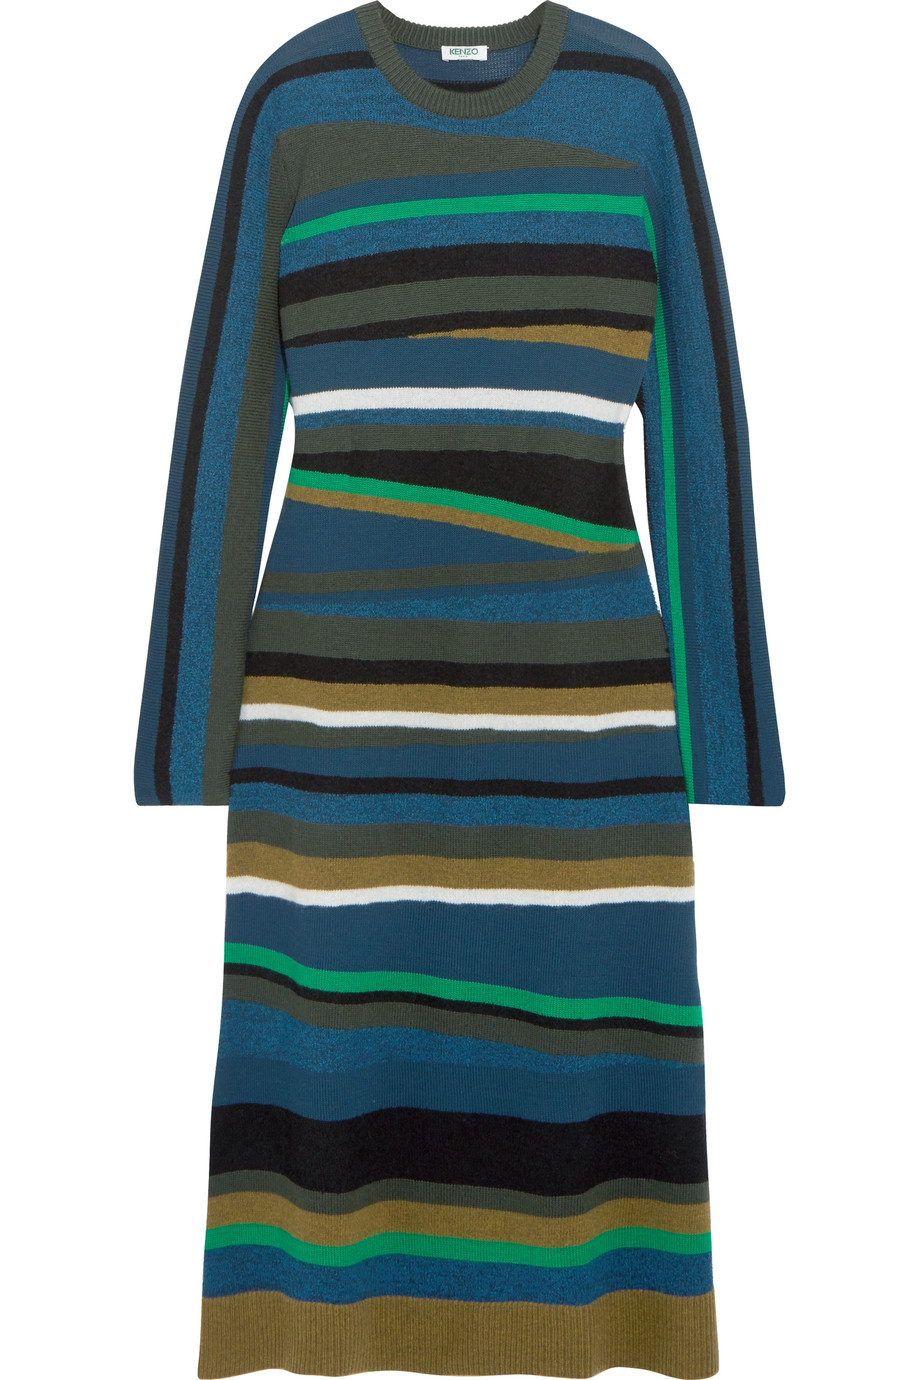 Striped knitted dress.jpg